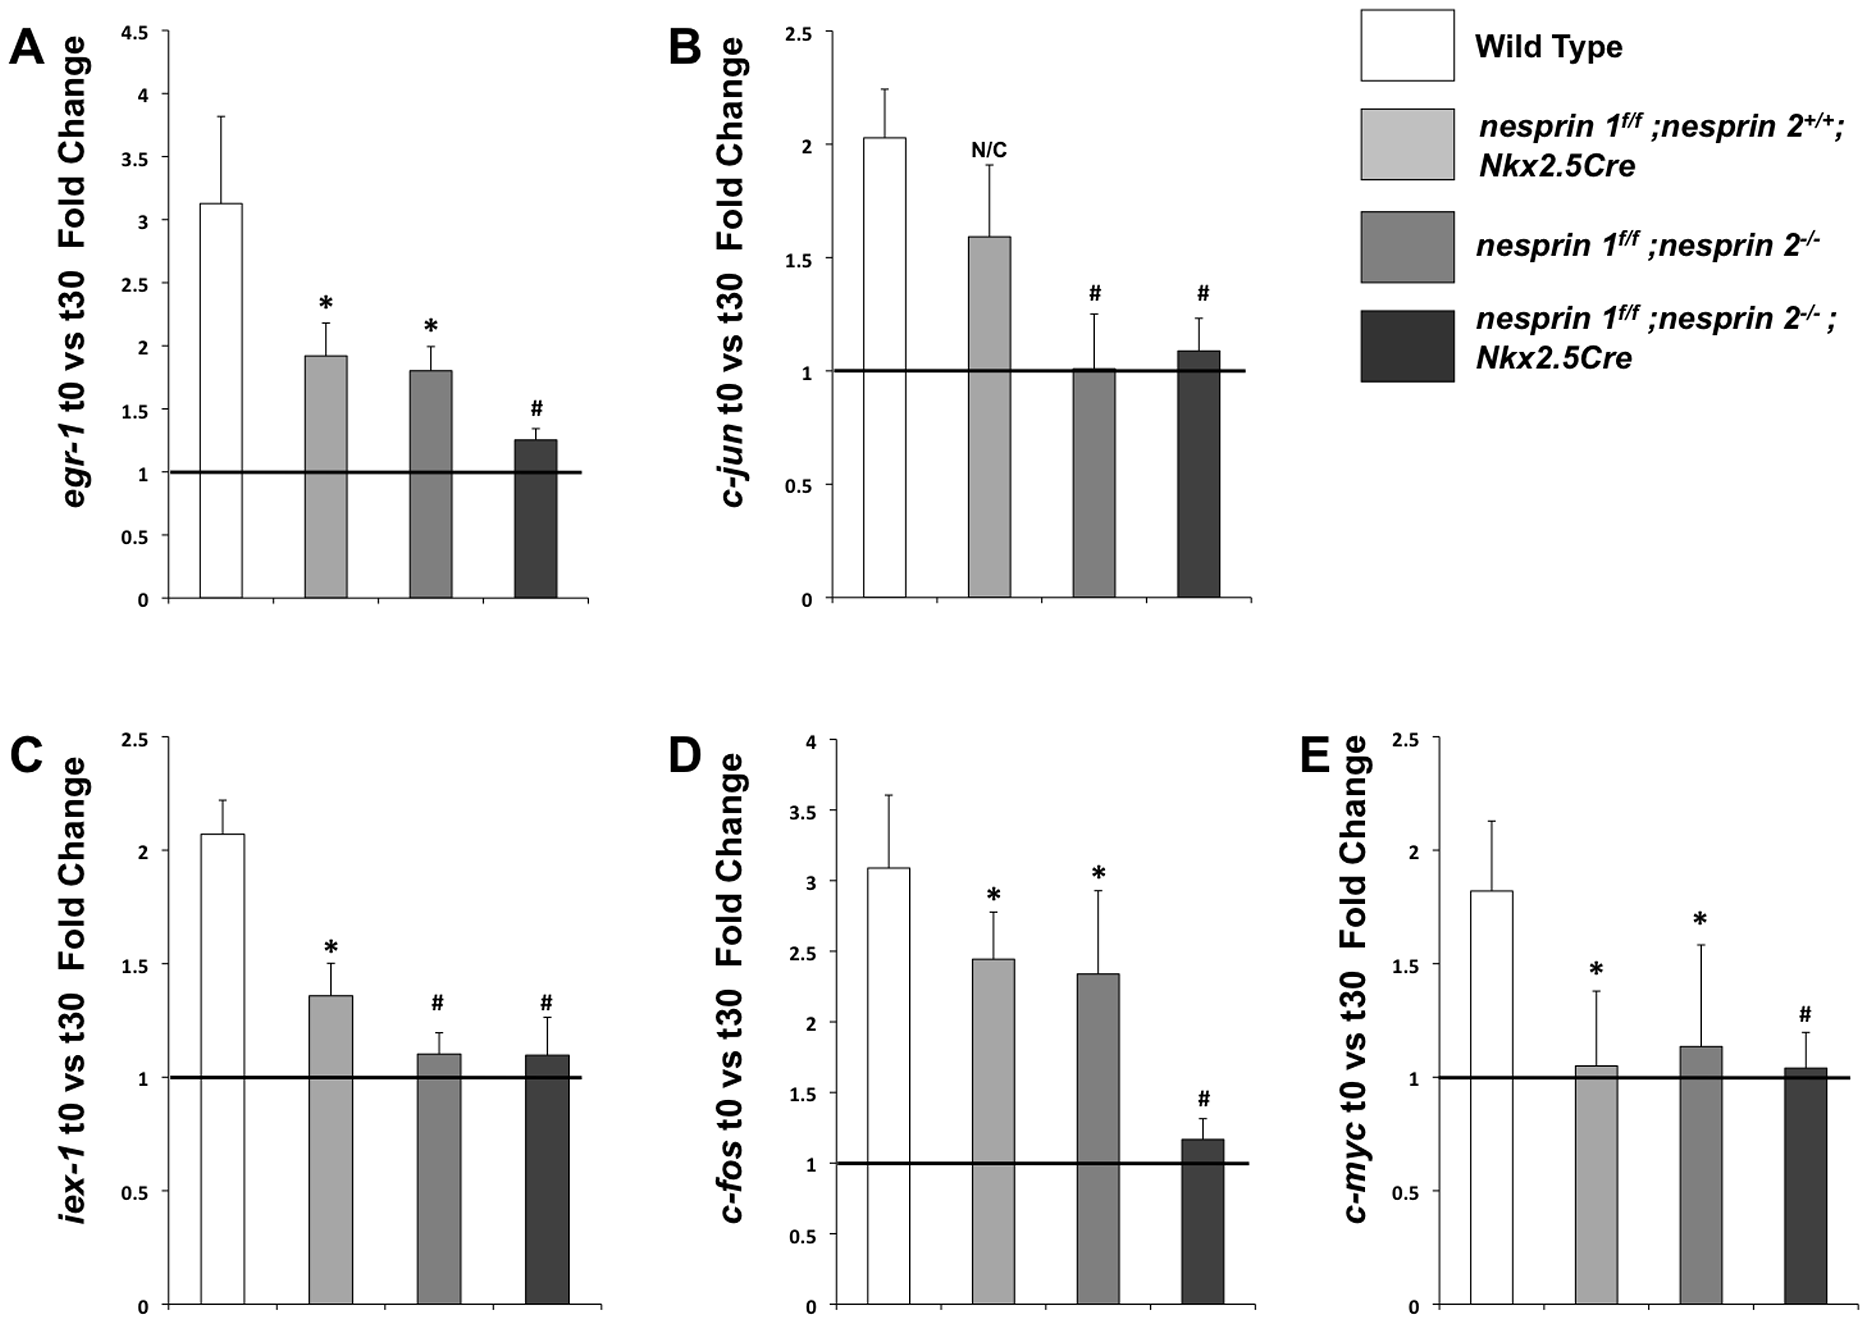 Examination of biomechanical gene response in isolated neonatal cardiomyocytes from Wild Type, <i>nesprin 1<sup>f/f</sup>;nesprin 2<sup>+/+</sup>; Nkx2.5Cre</i>, <i>nesprin 1<sup>f/f</sup>;nesprin 2<sup>−/−</sup></i> or <i>nesprin 1<sup>f/f</sup>;nesprin 2<sup>−/−</sup>;Nkx2.5Cre hearts</i>.